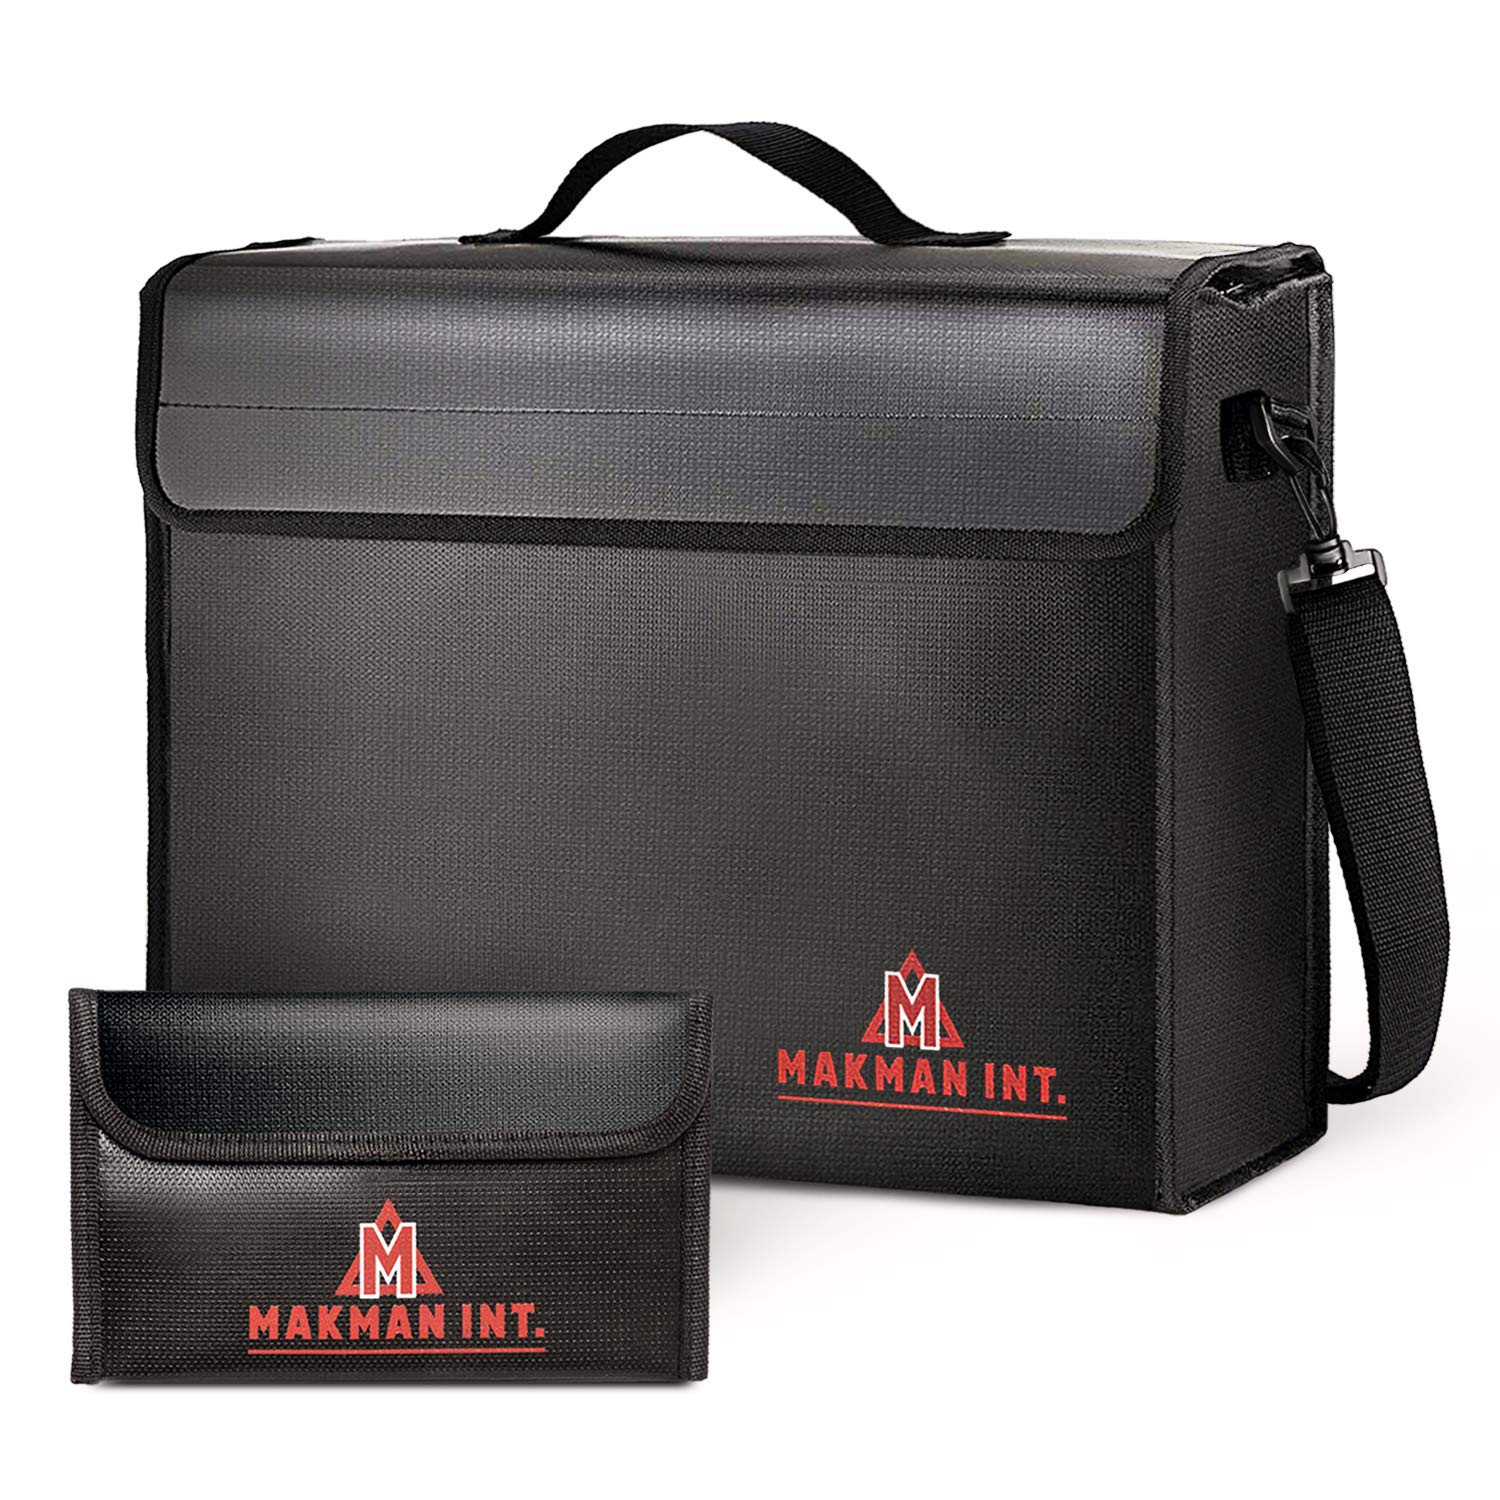 MakMan int. Large (17 x 12 x 5.8 inches) Fireproof Bag with Bonus Bag, Fireproof Bag for Documents & Money, Fireproof Safe & Water Resistant Bag for Money & Documents, Fireproof Money Safe Bag